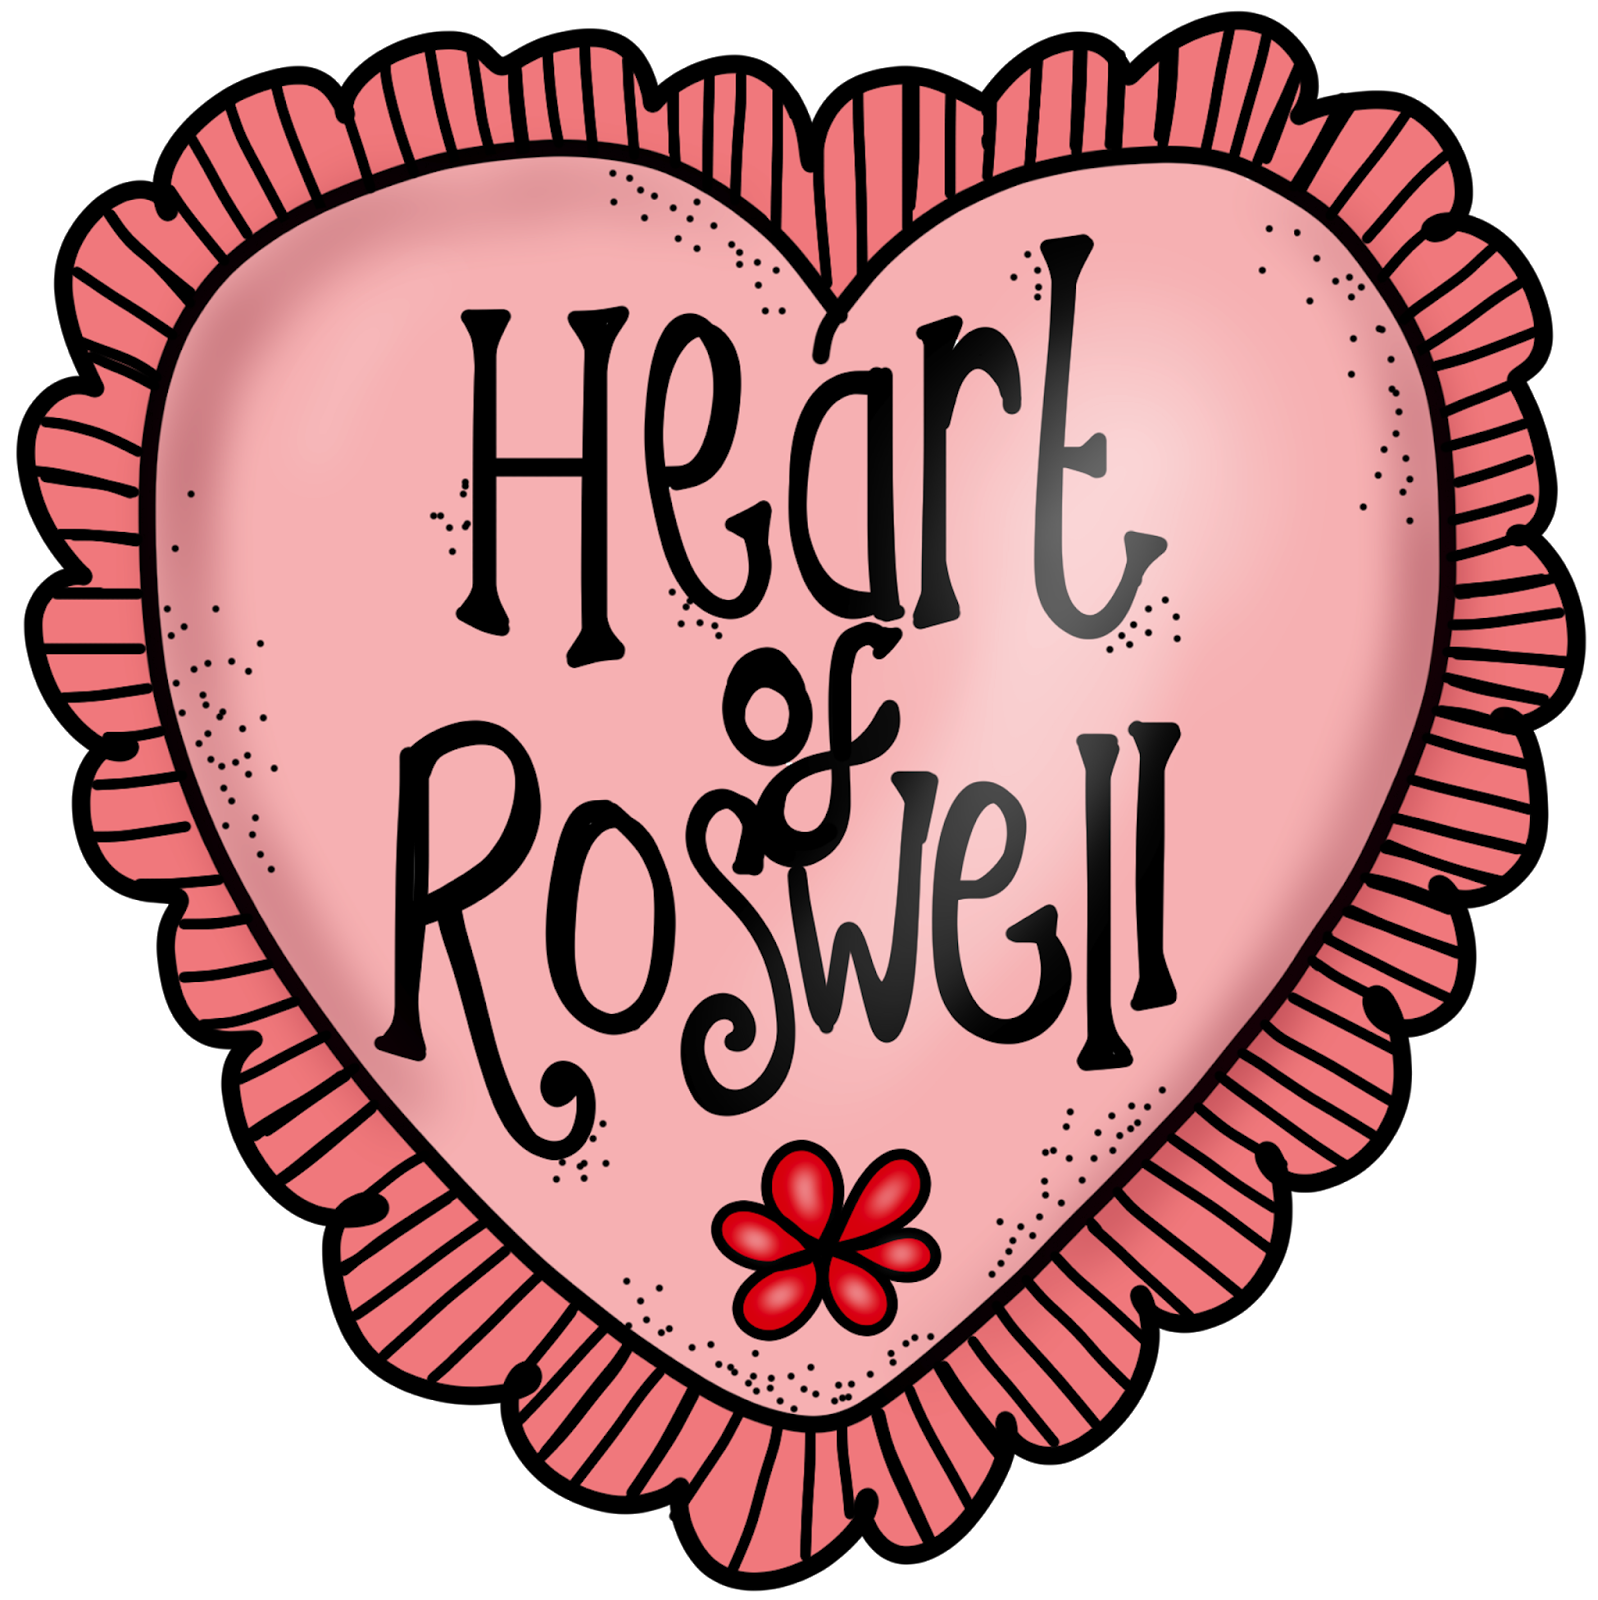 http://www.teacherspayteachers.com/Store/Heart-Of-Roswell